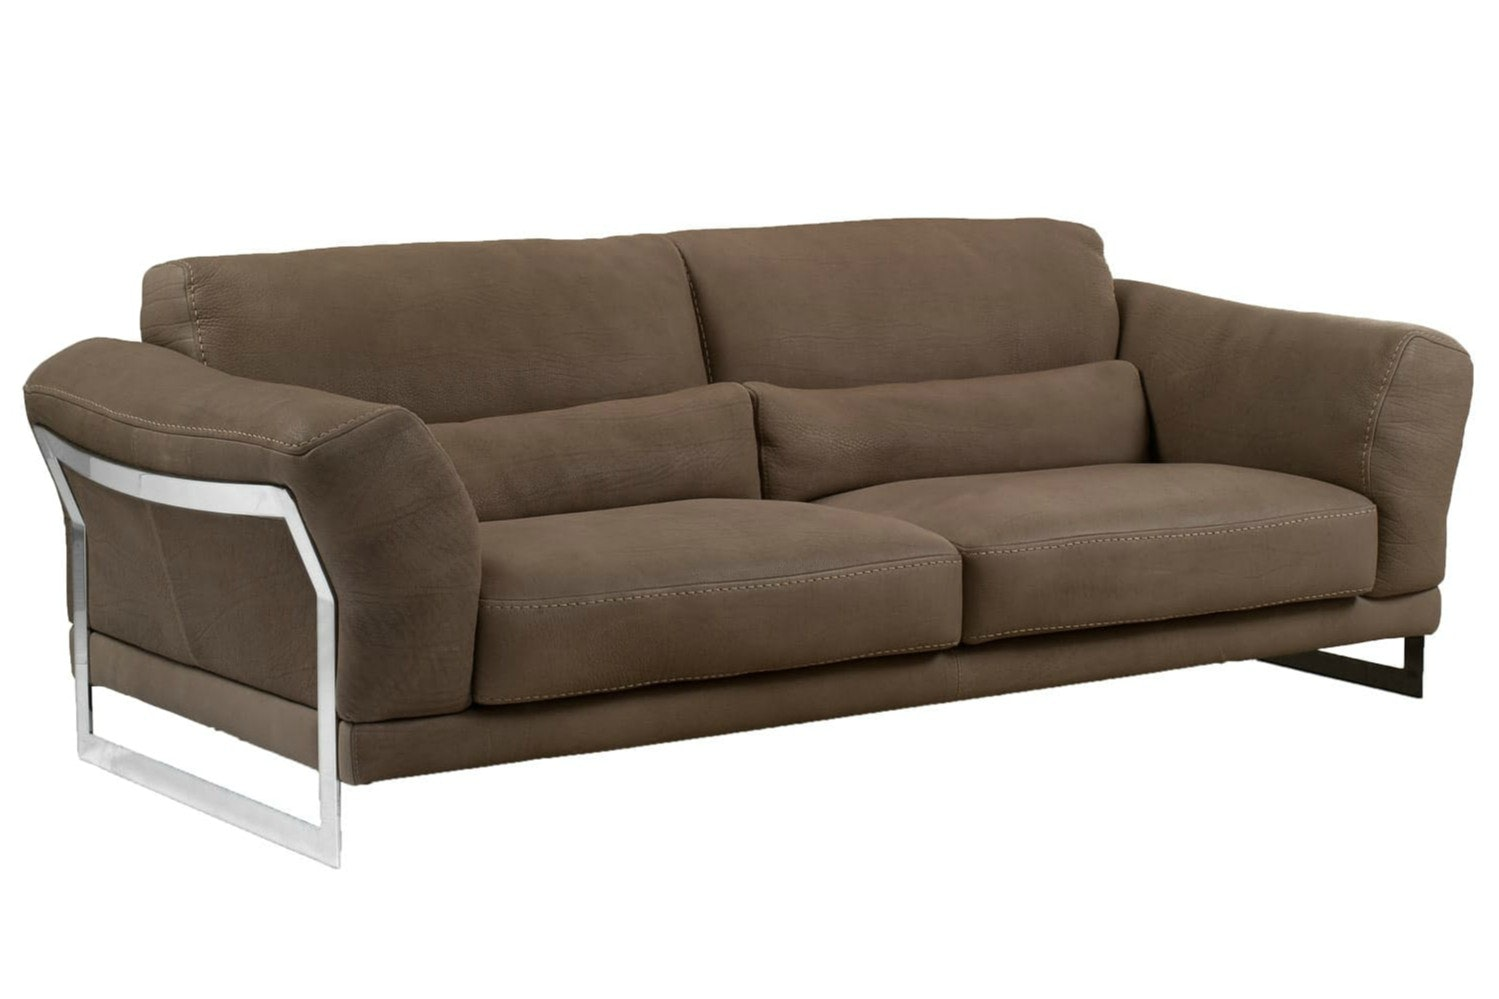 Giotto 2.5 Seater Sofa